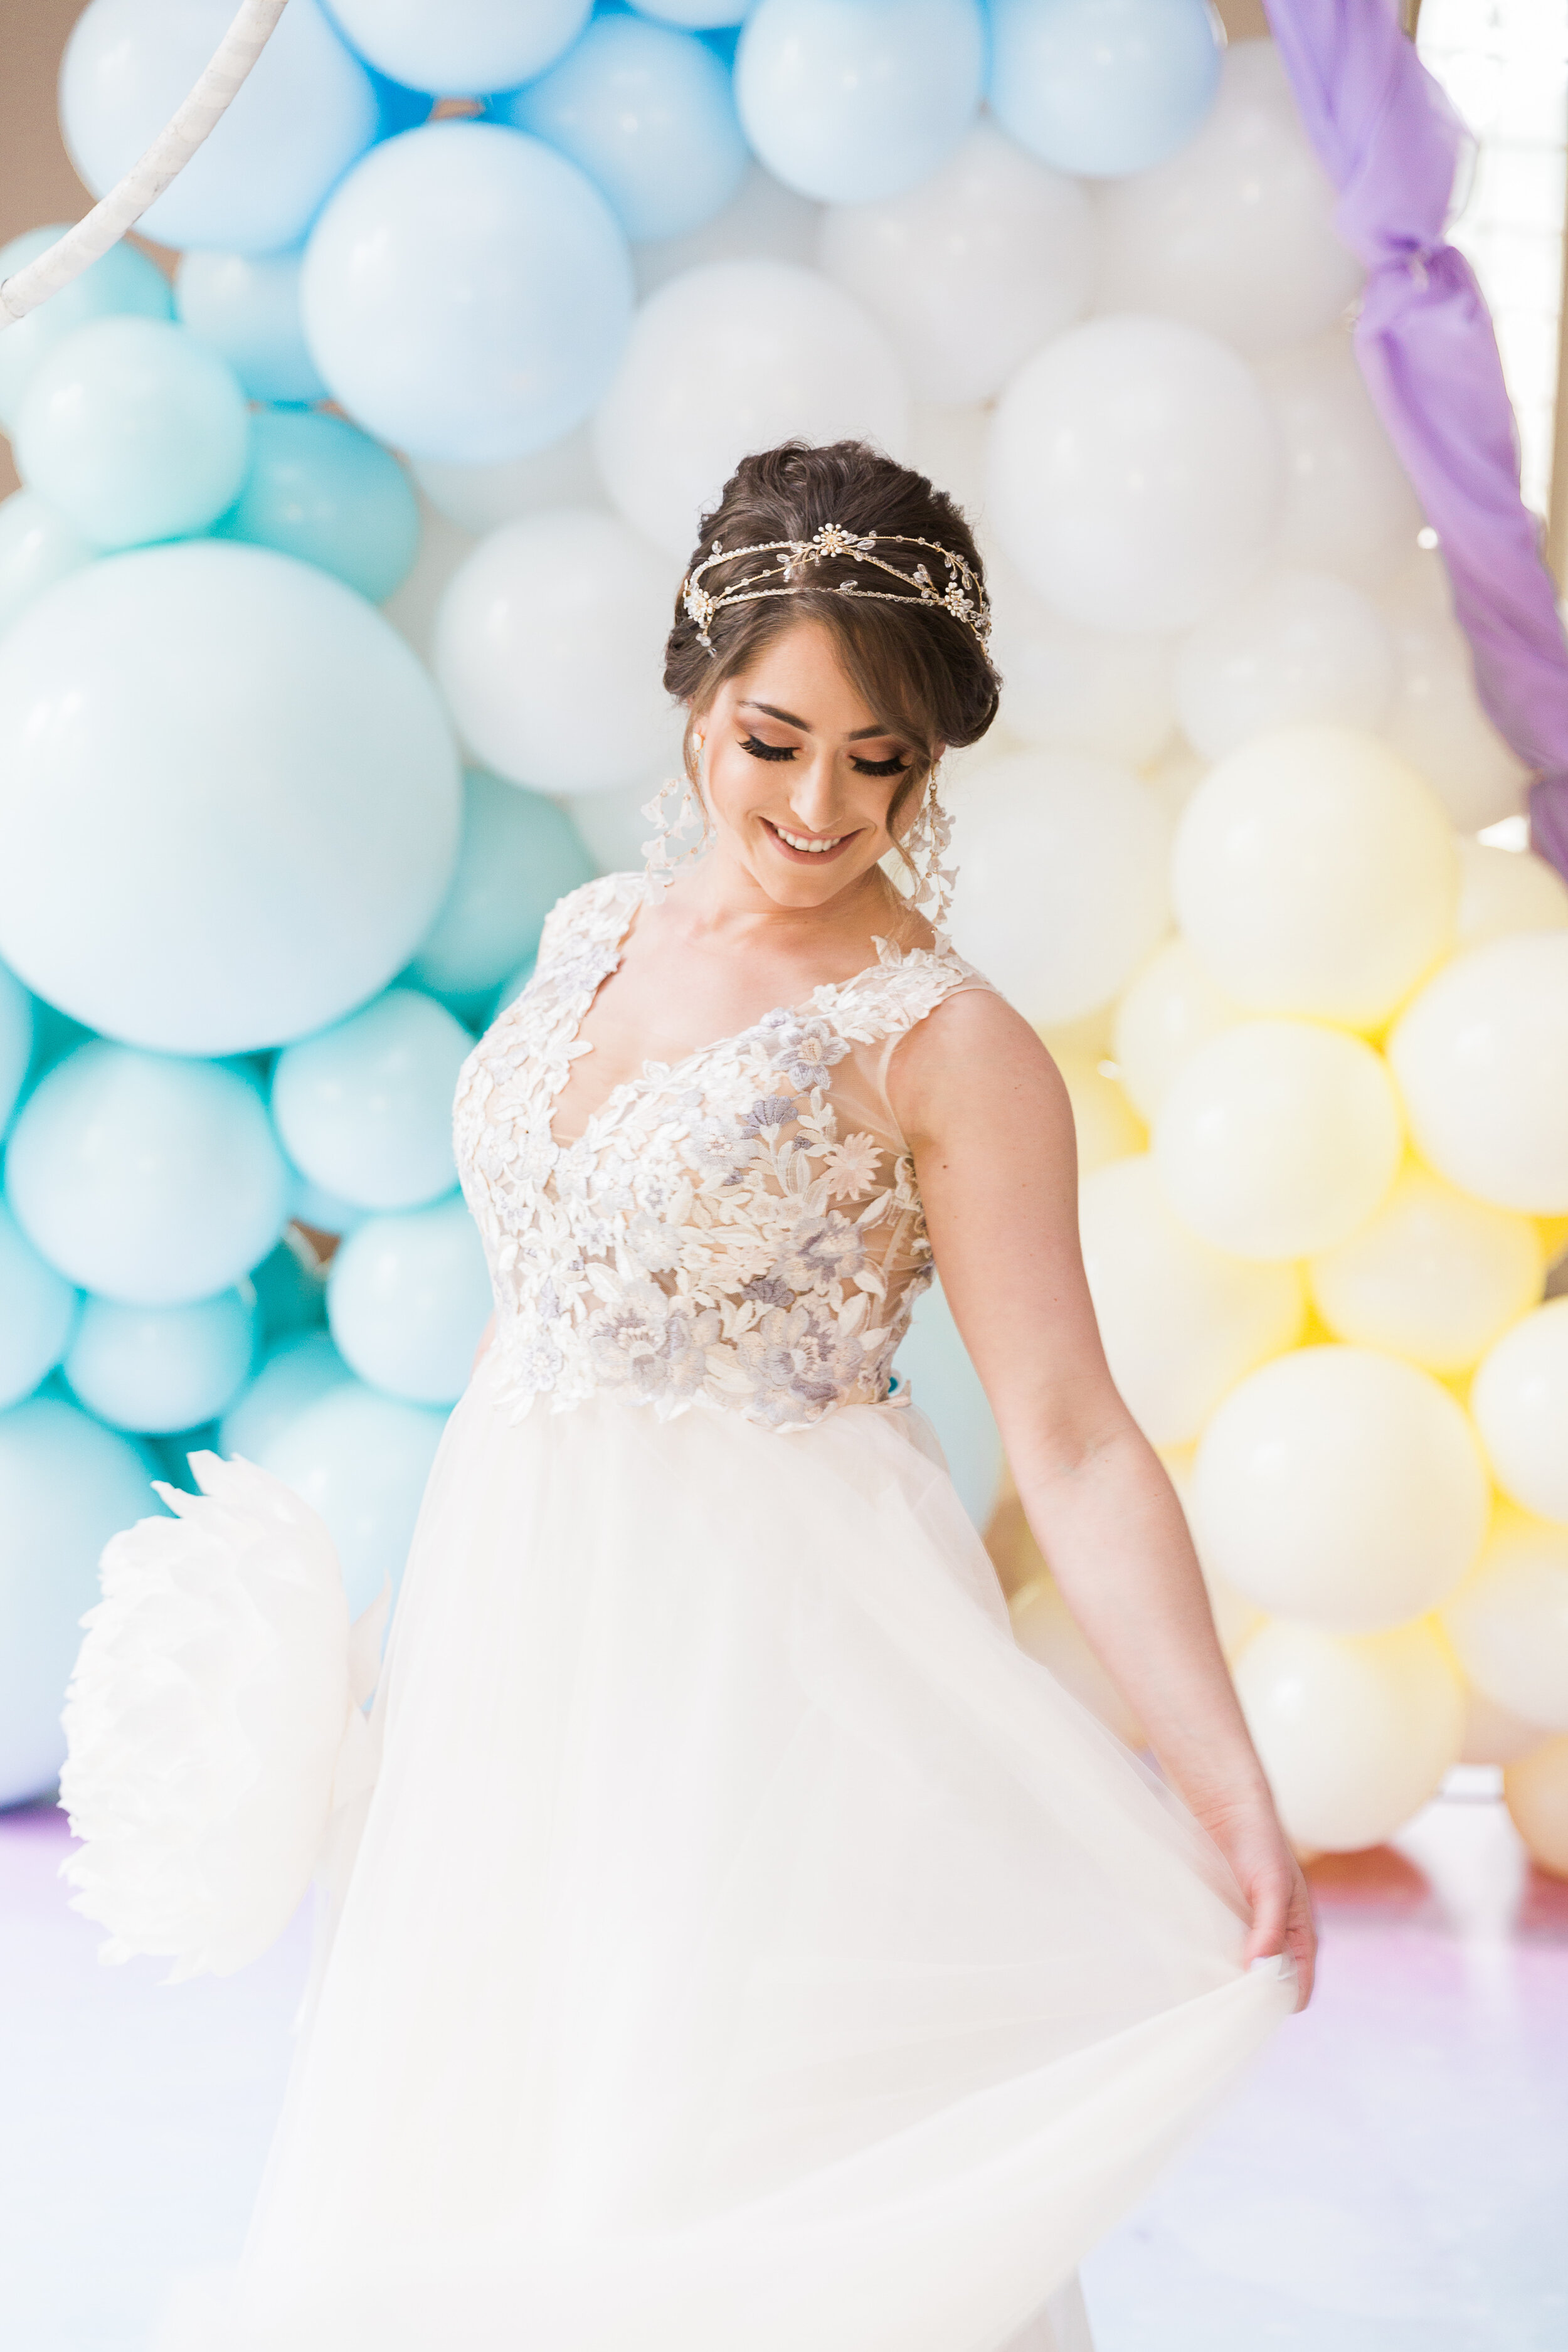 happy whimsical bride with balloon back drop - Samantha Ong Photography